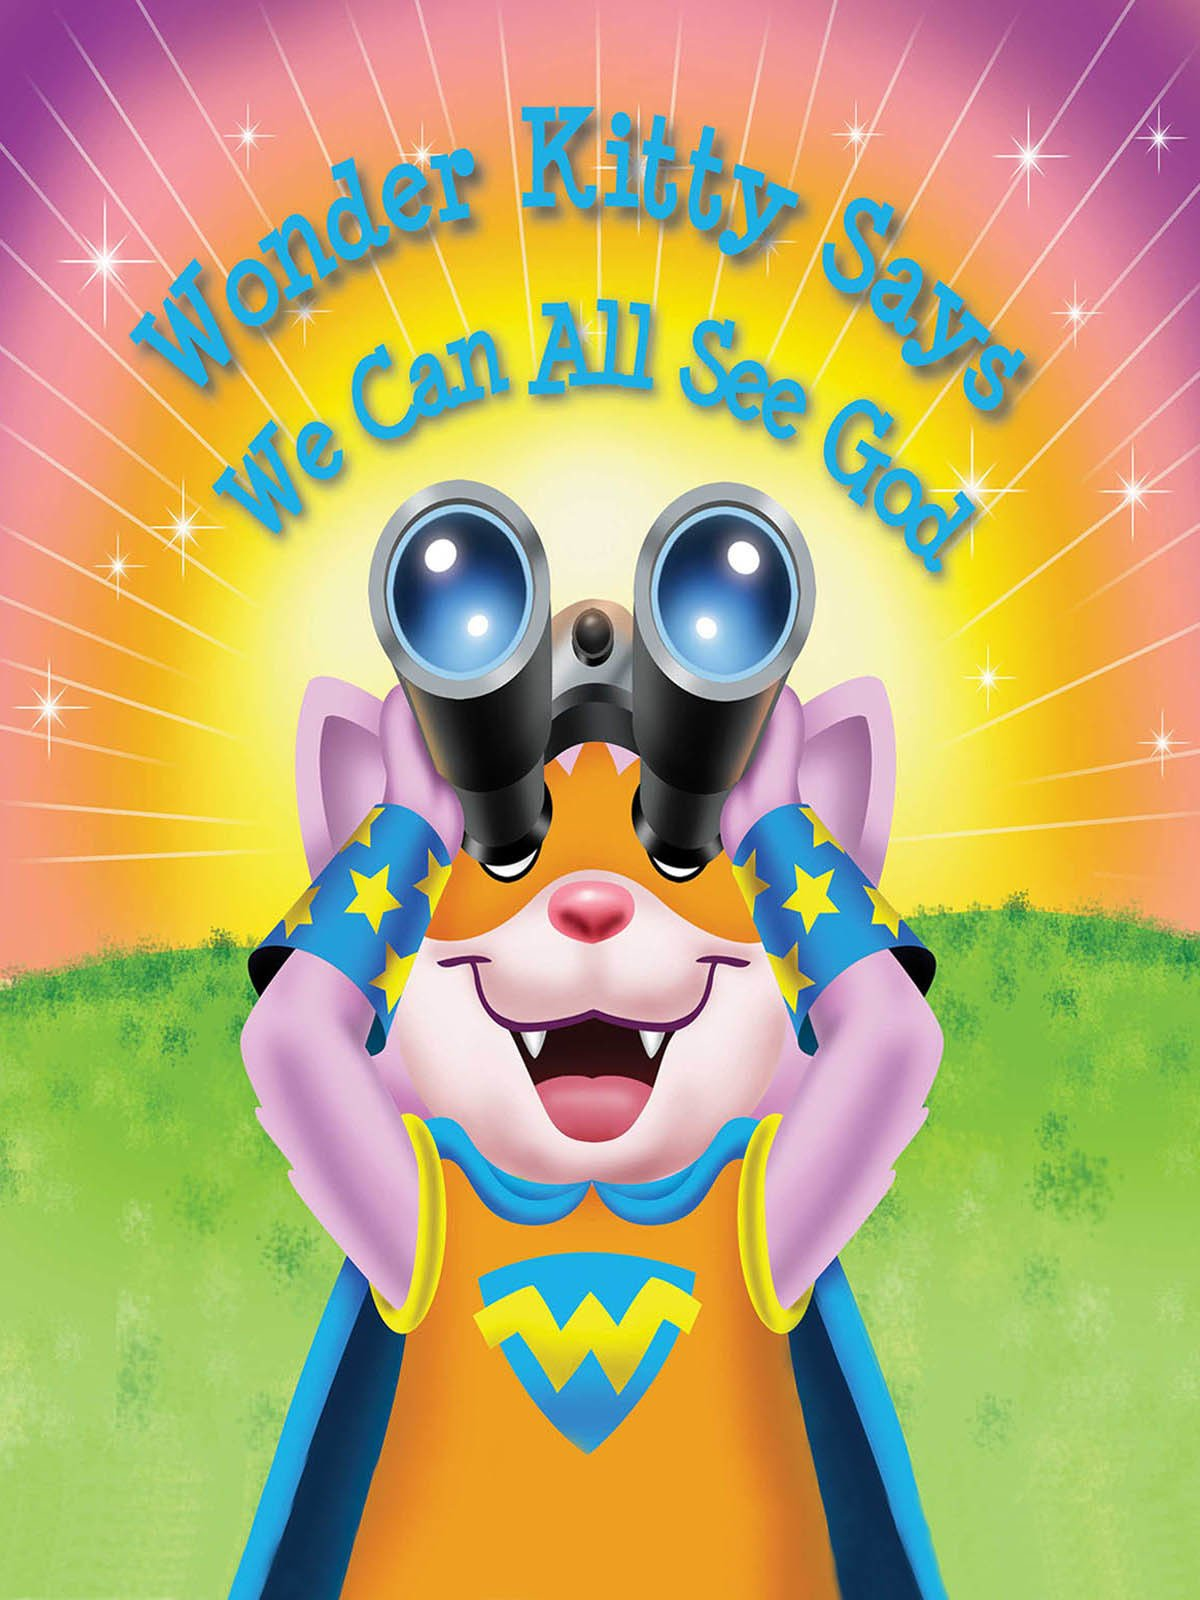 Wonder Kitty Says We Can All See God